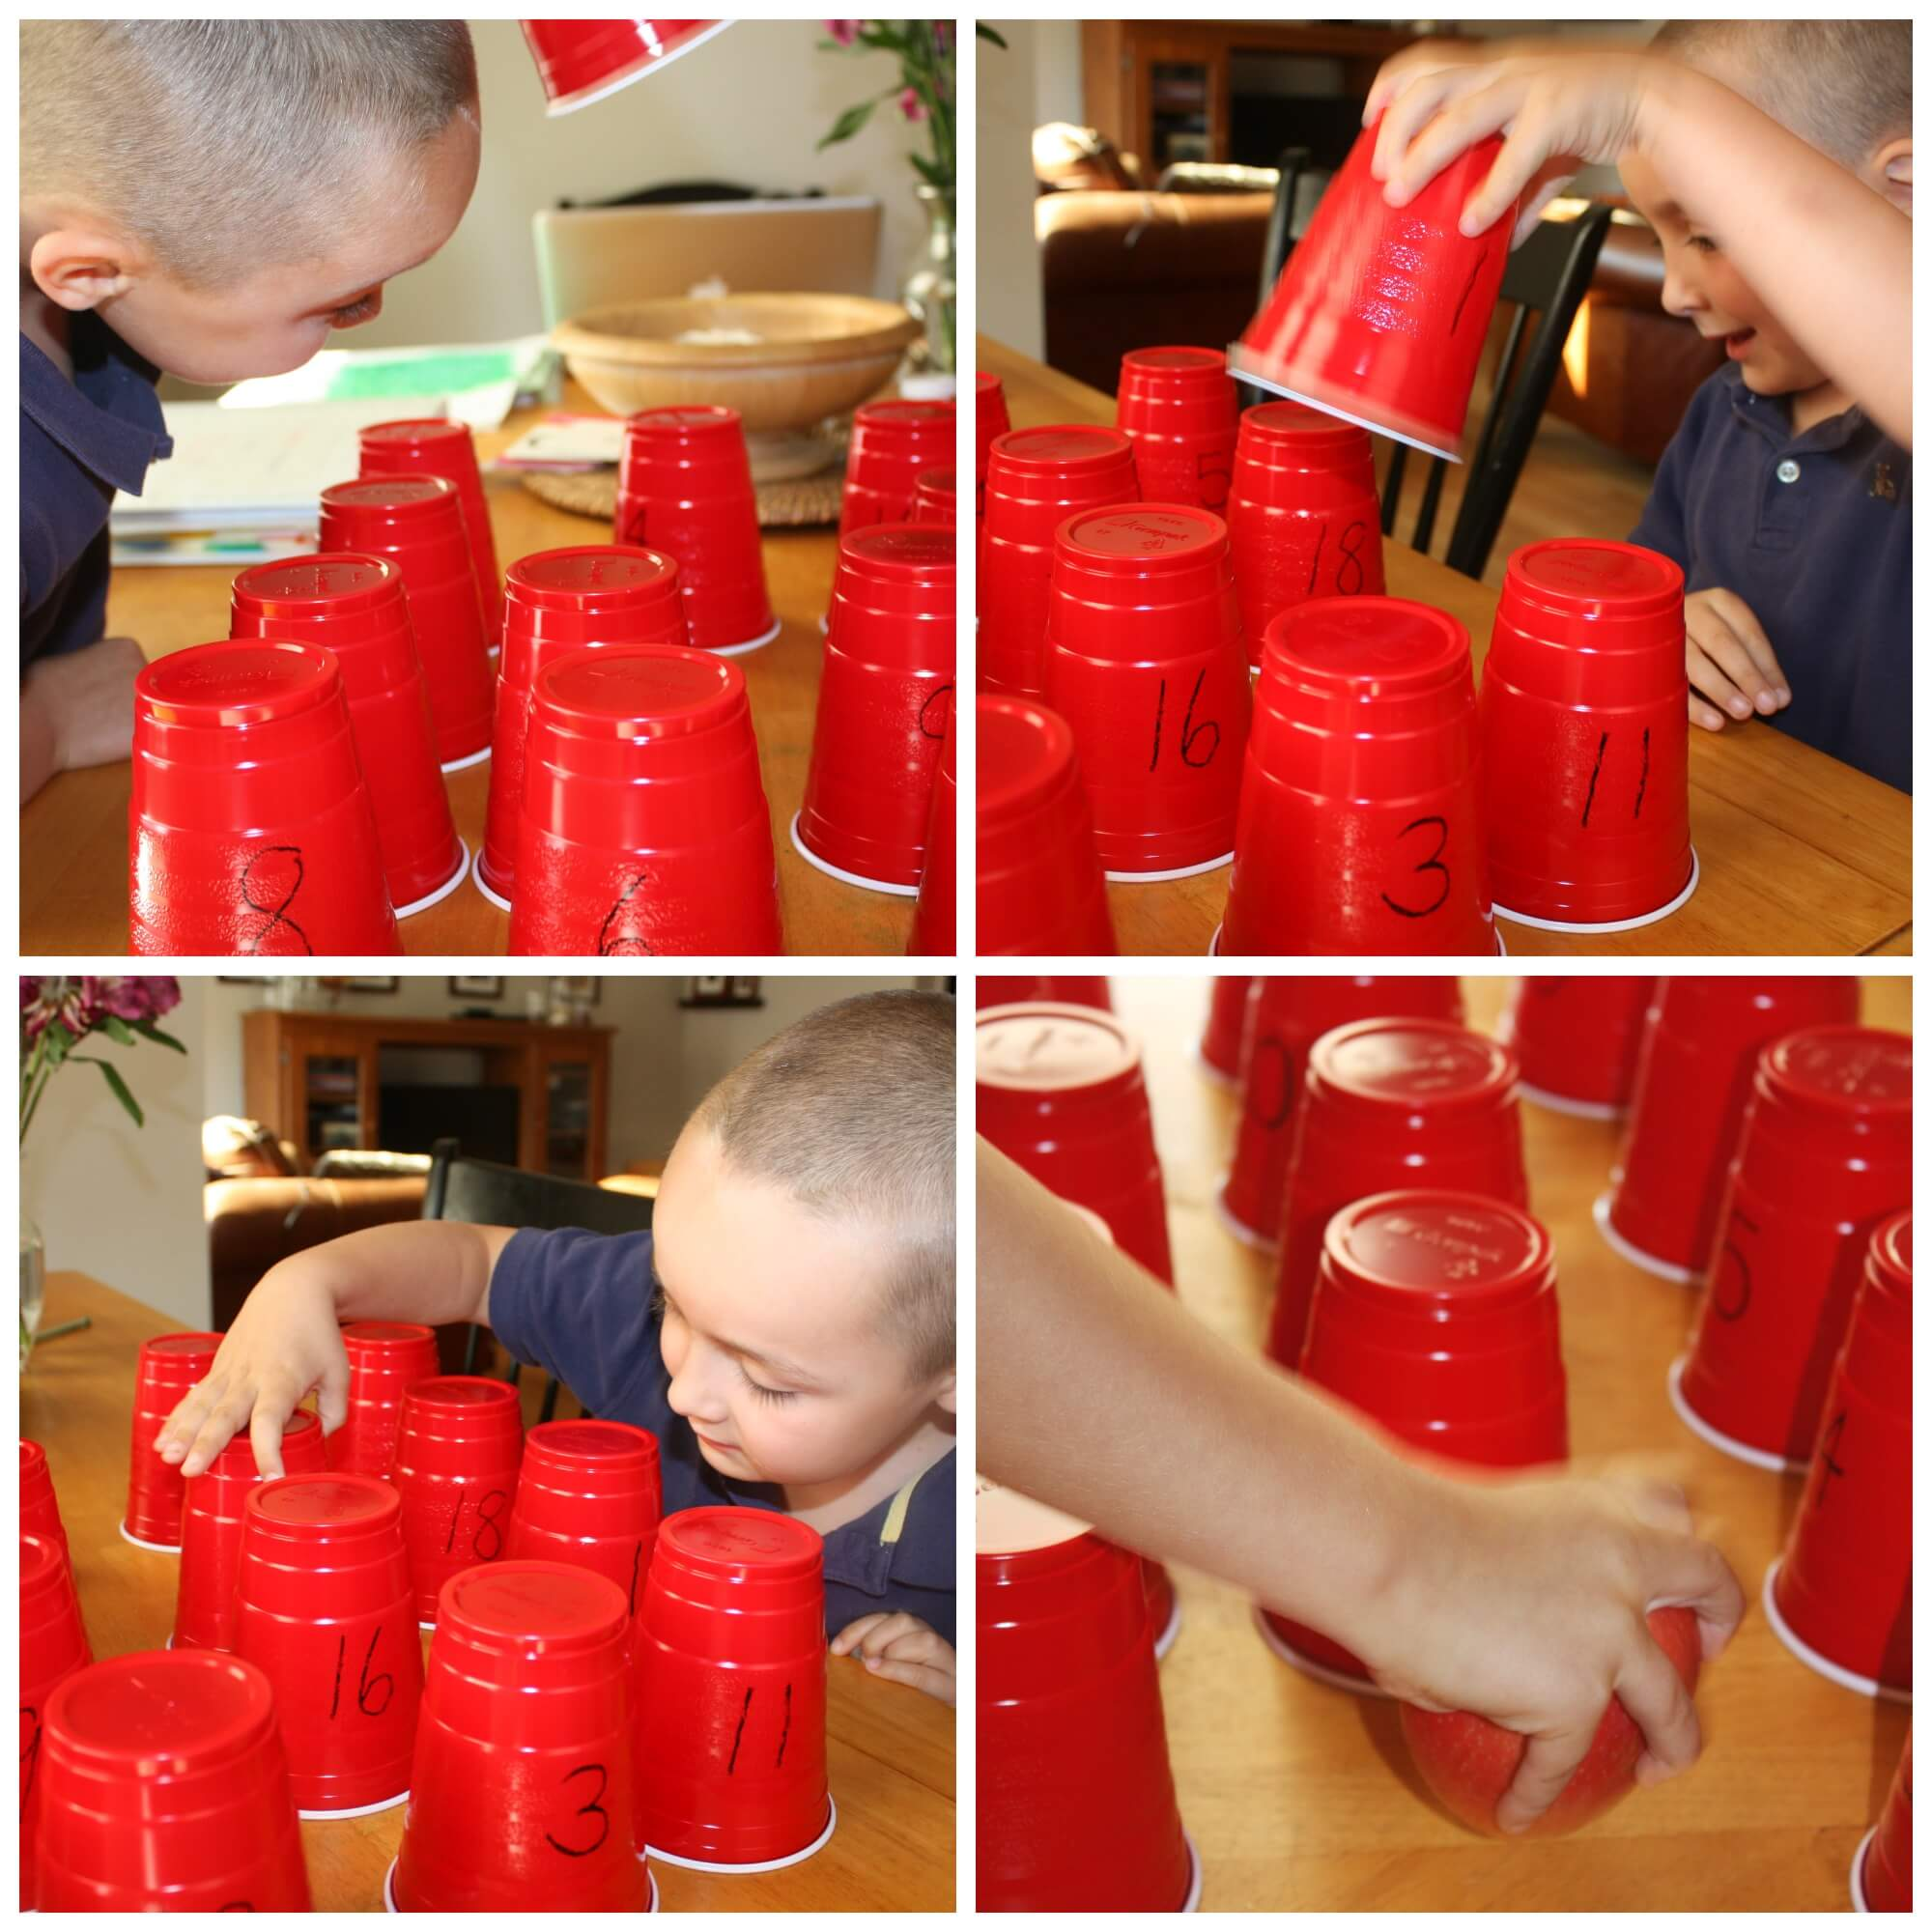 Plastic cup learning games for kids early learning activities - Cups and kids ...